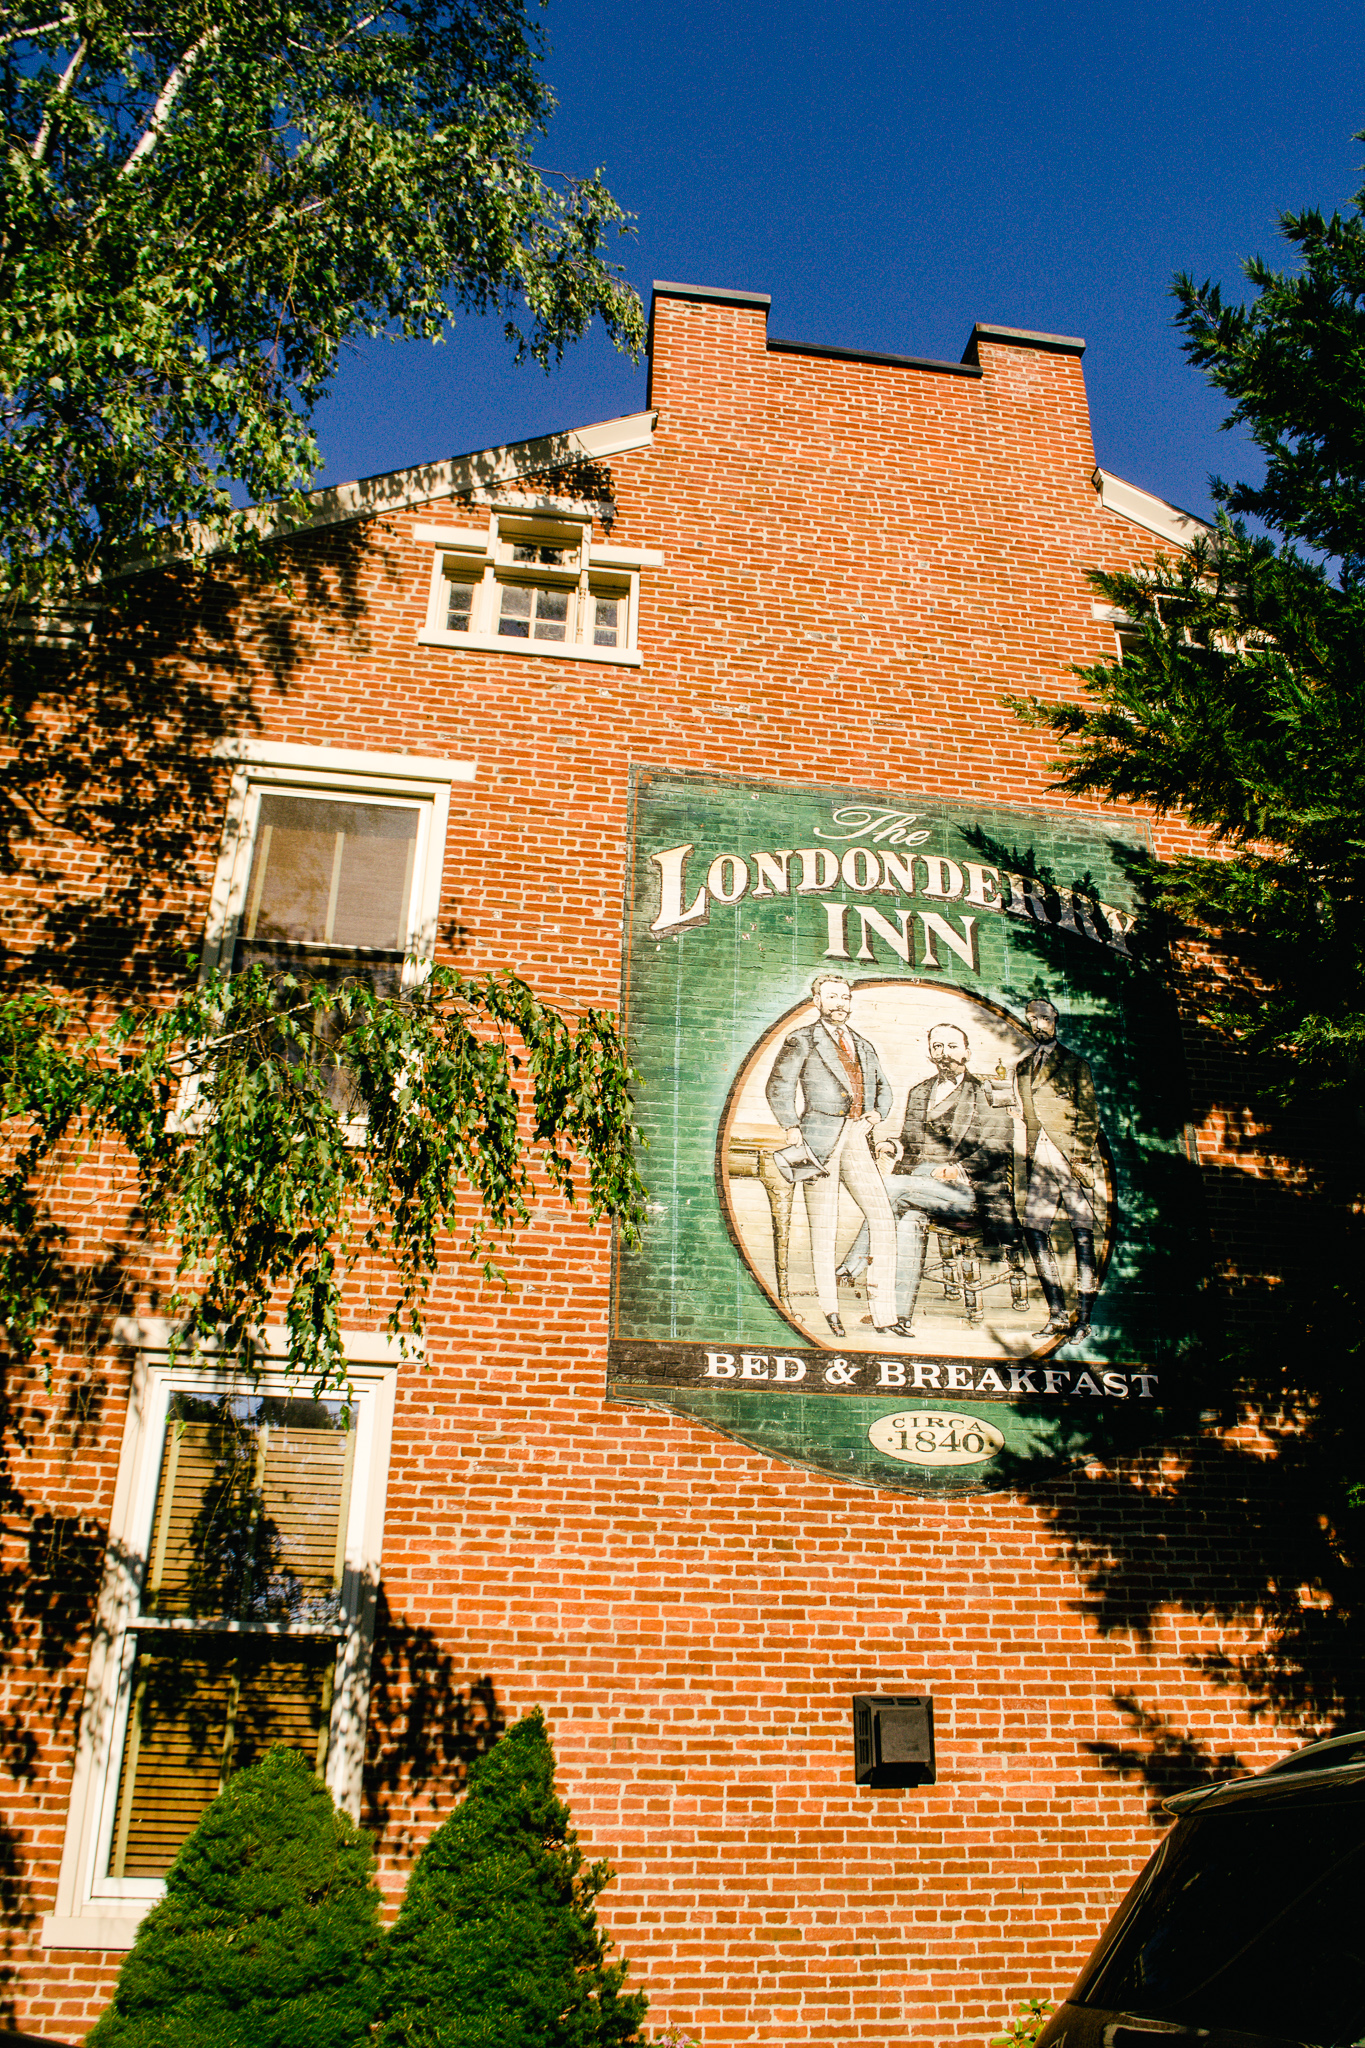 The Londonderry Inn: Where We Stayed in Hershey, PA During Our Visit to Chocolate World